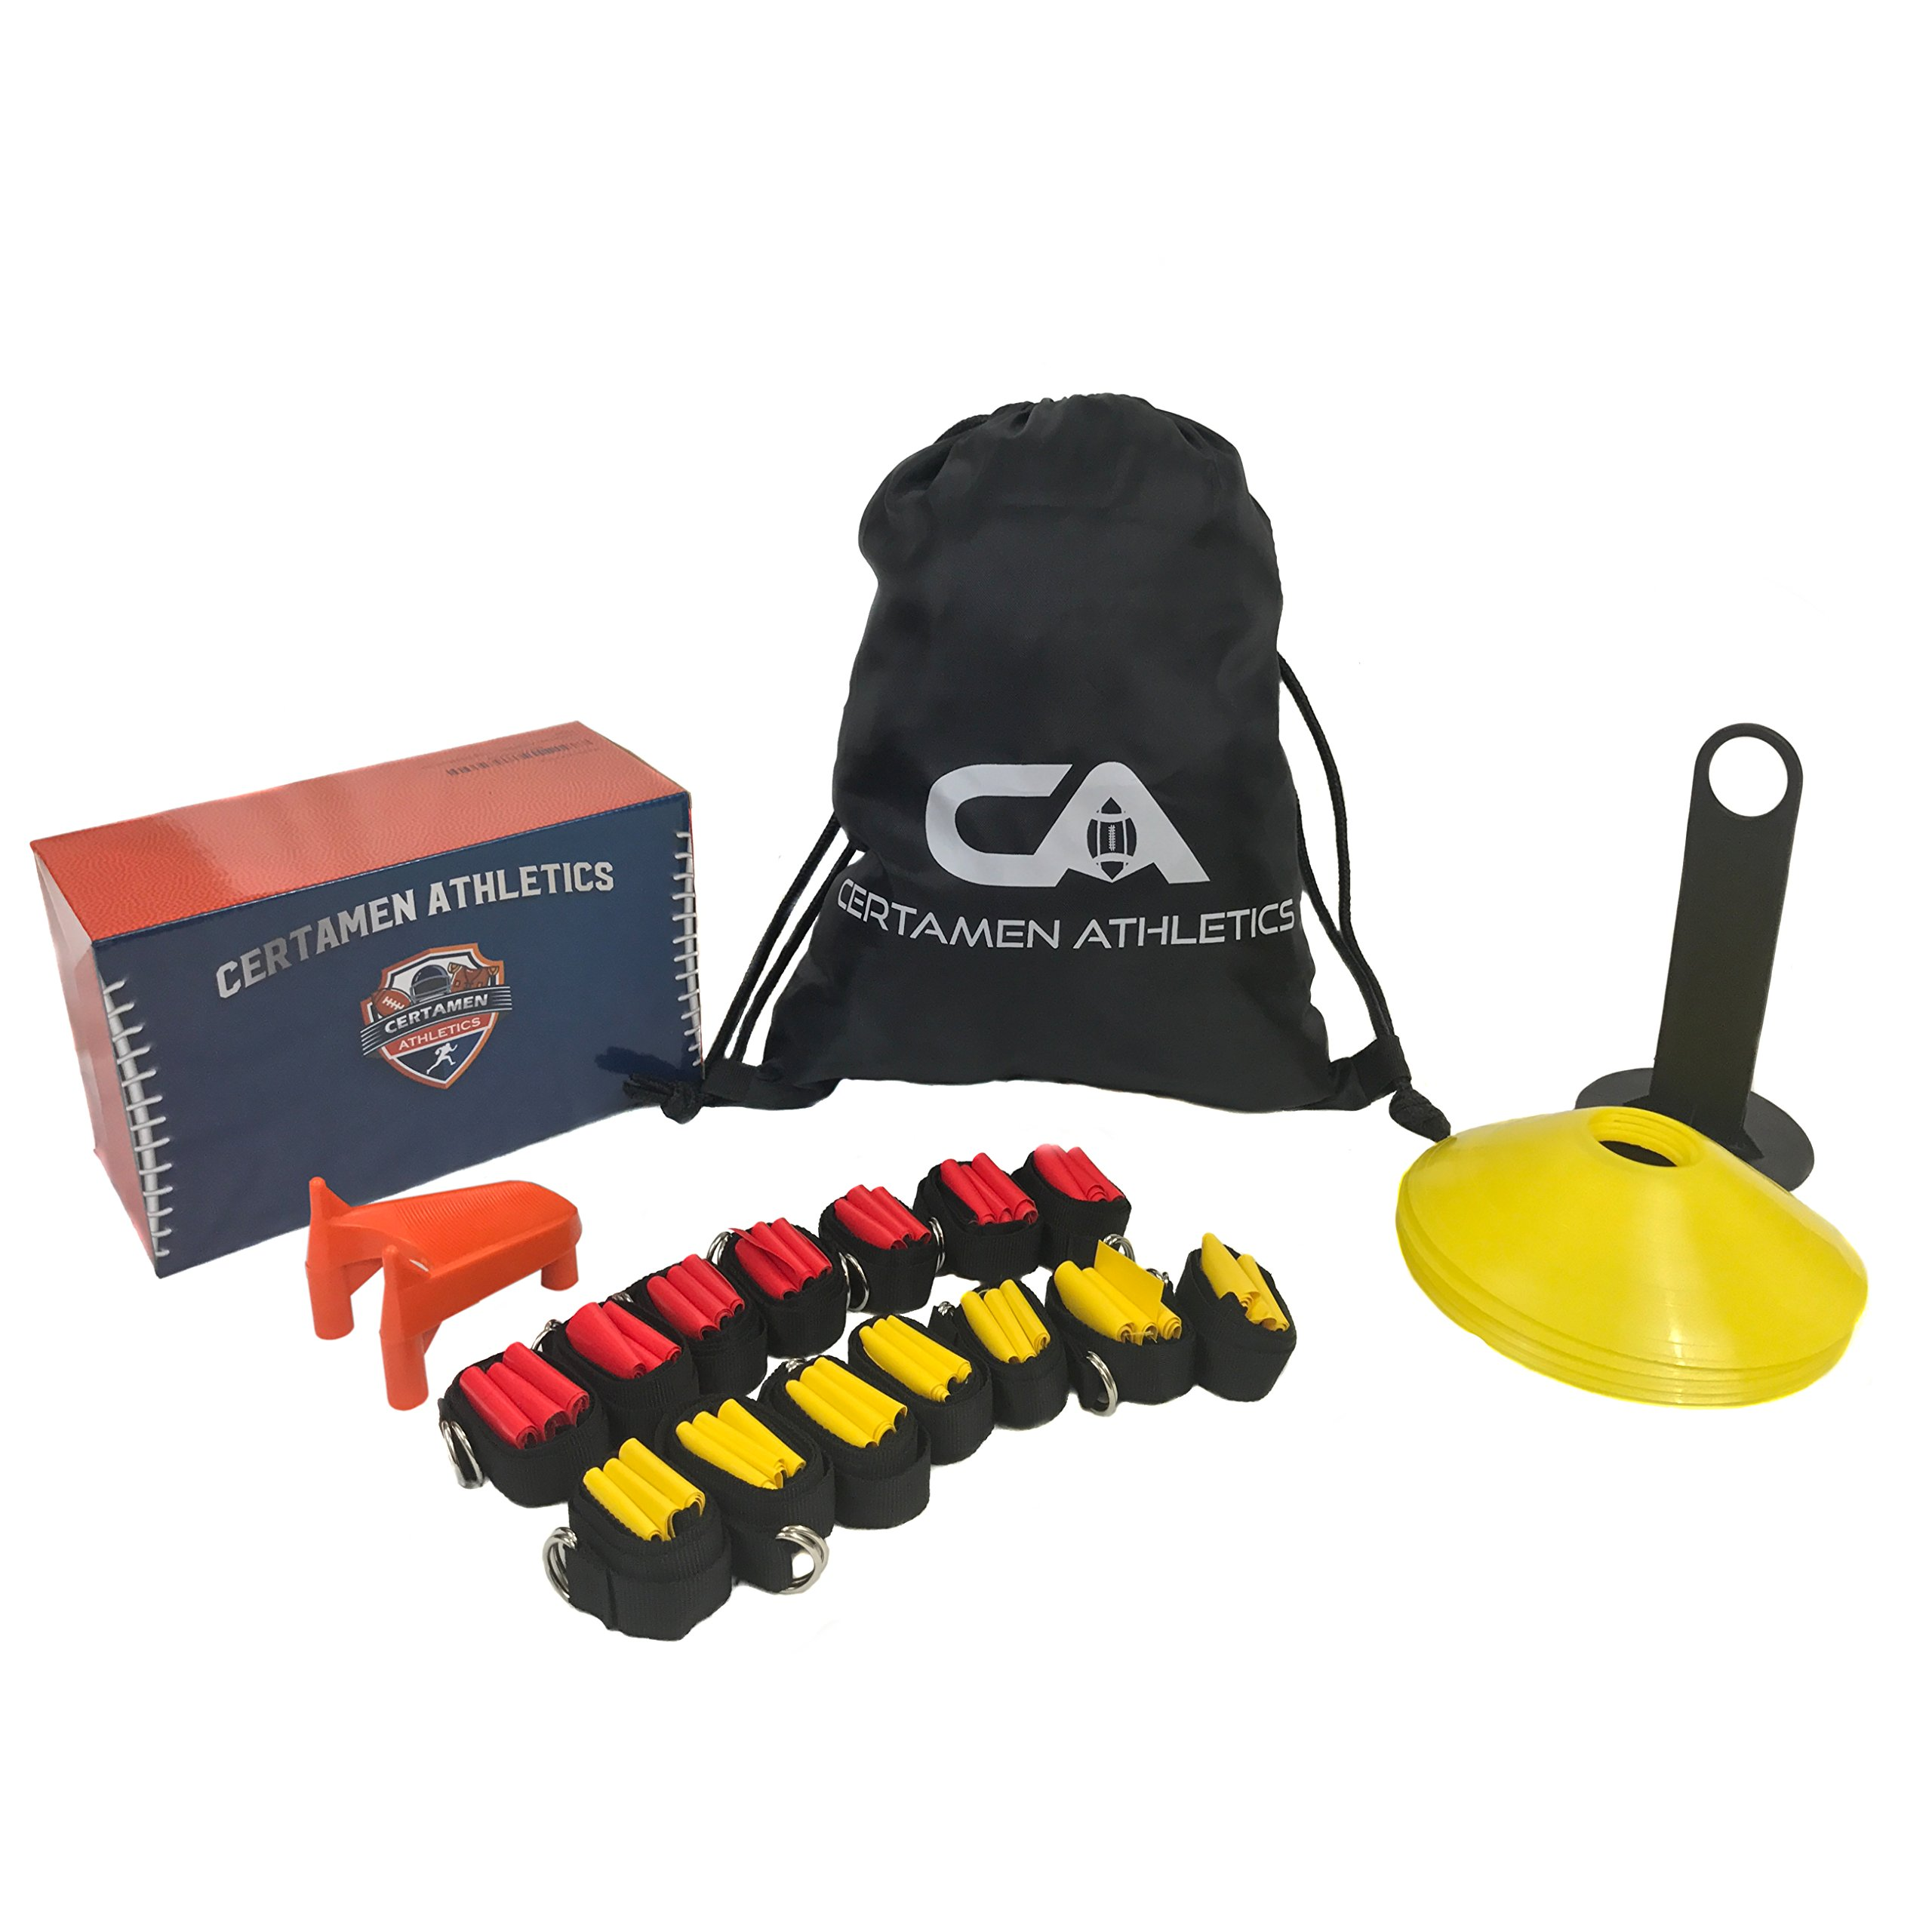 14 Player Flag Football Set - 65 Total Pieces, Football Flags For Kids And Adults, Youth Football Kit | Includes 14 Belts, 3 Flags Each, 6 Cones And Stand, Carrying Bag And a BONUS Kicking Tee